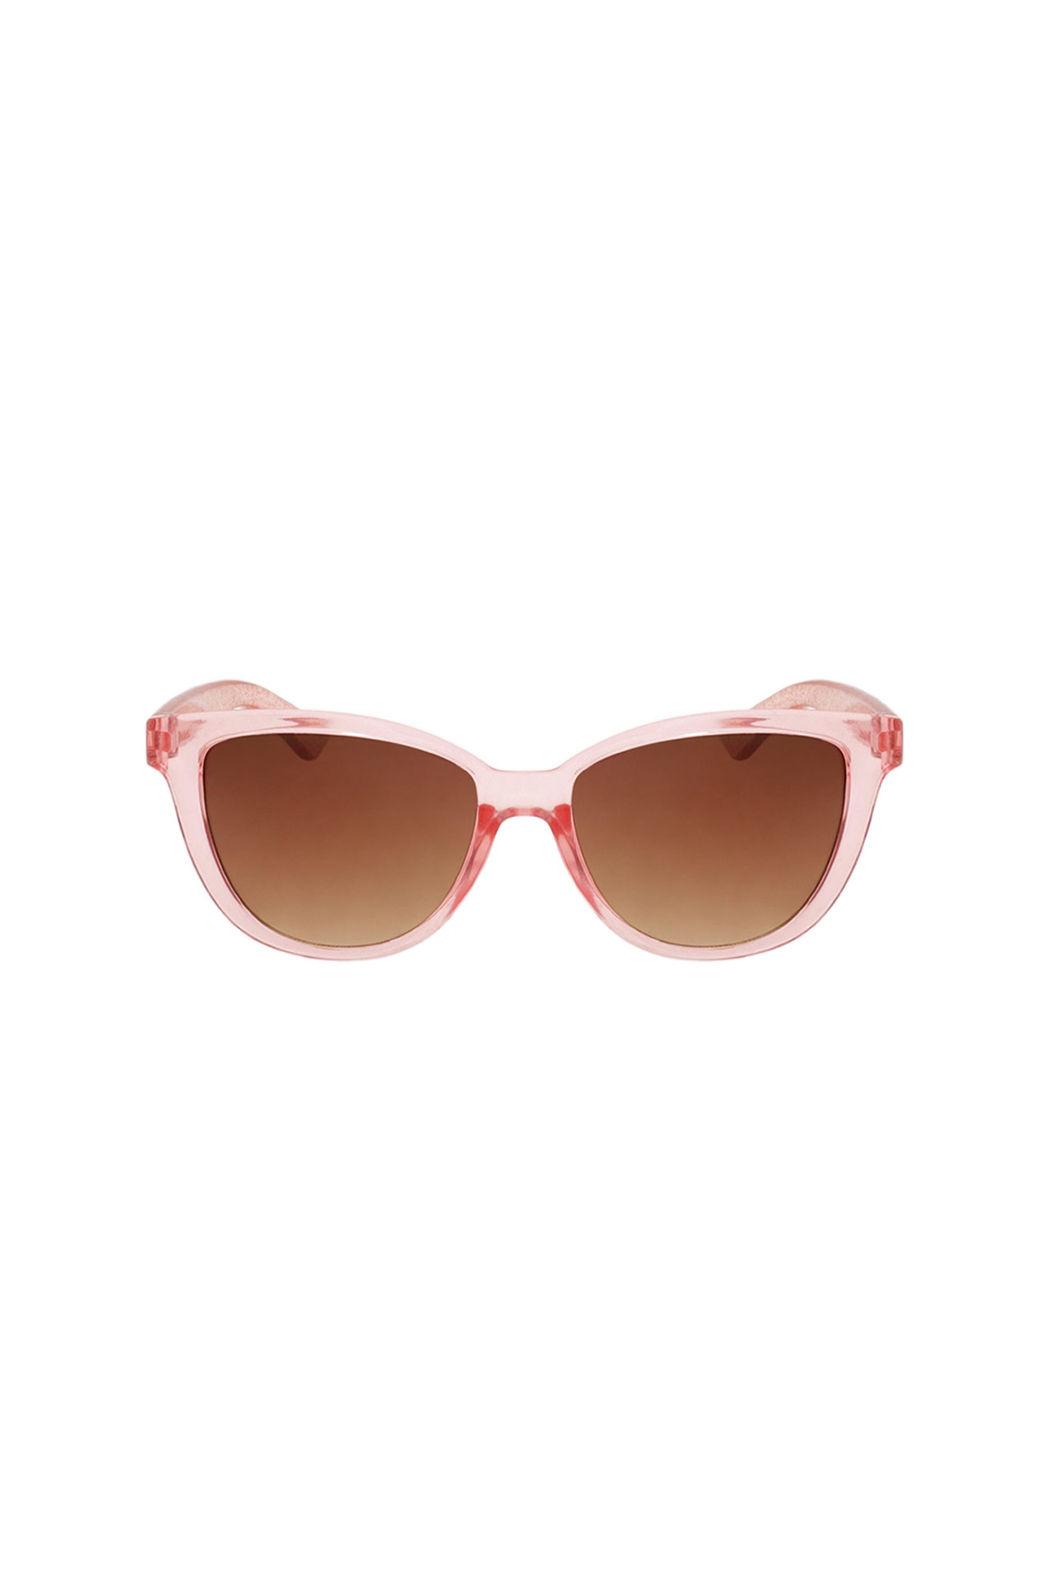 Shark Eyes Sunglasses With Matching Case: Mermaids - Front Full Image